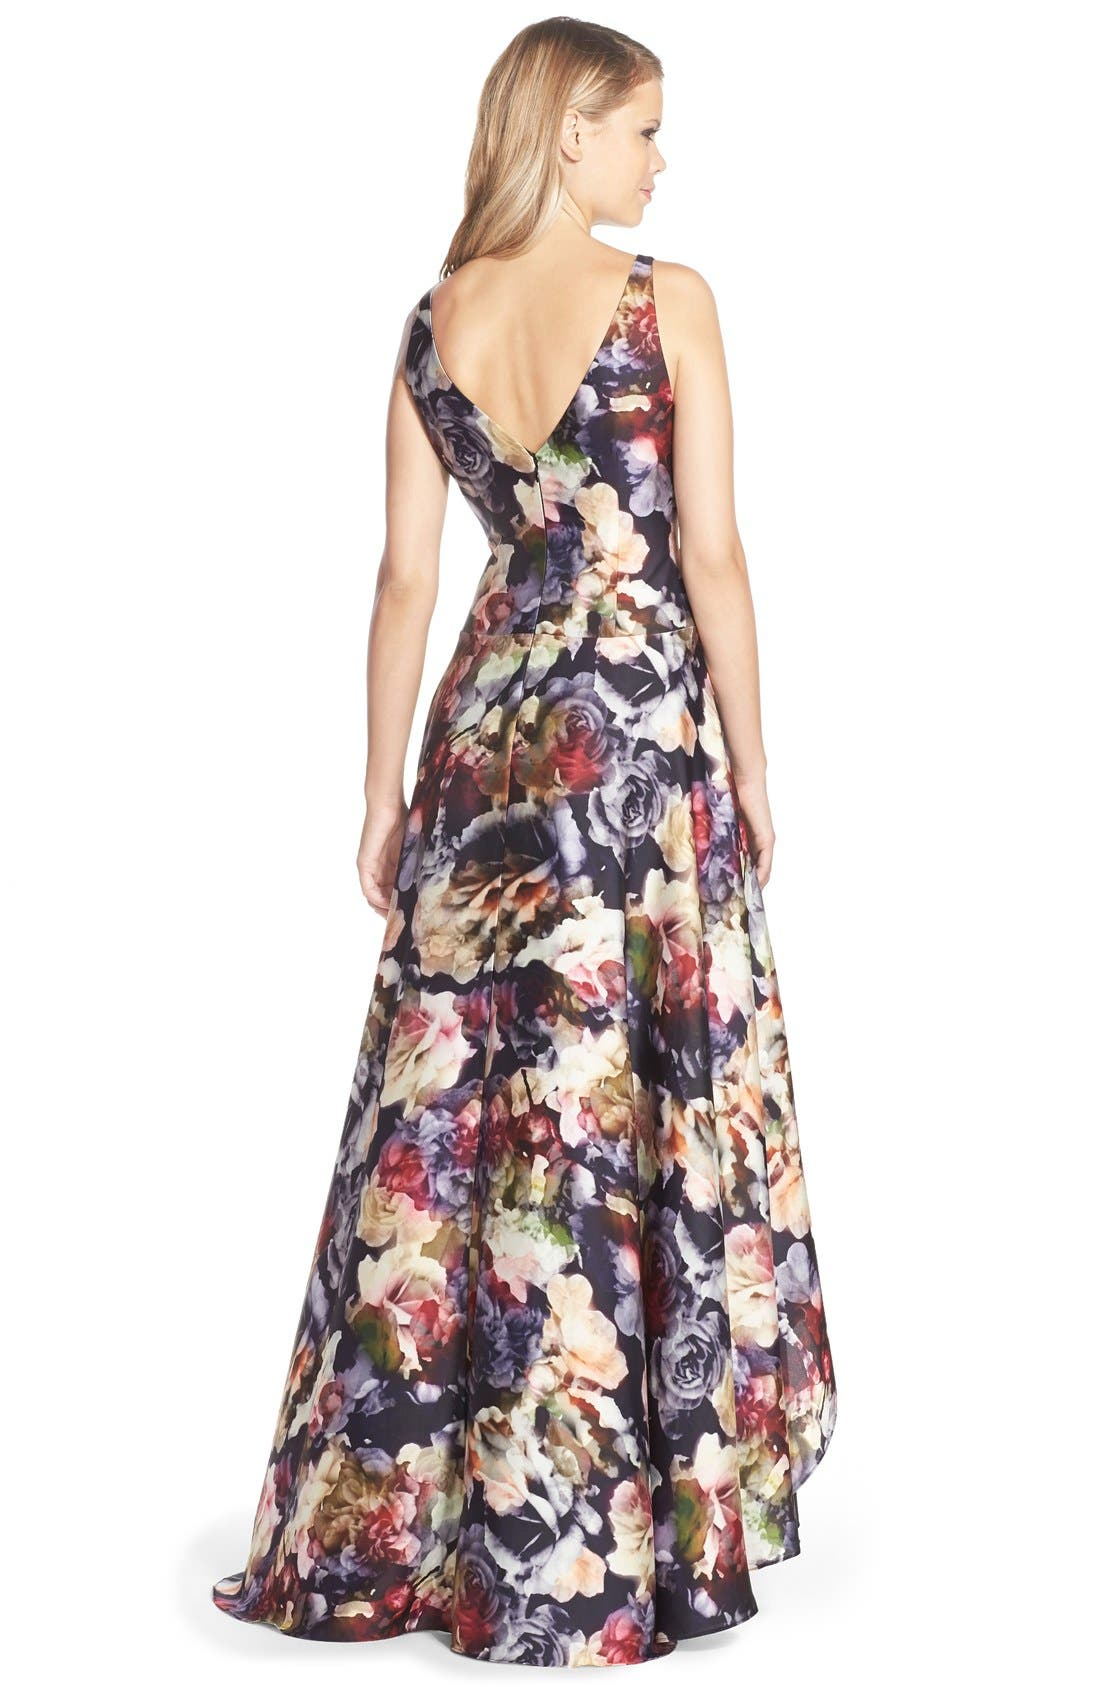 ADRIANNA PAPELL,                             Floral Print Charmeuse Fit & Flare Gown,                             Alternate thumbnail 2, color,                             643